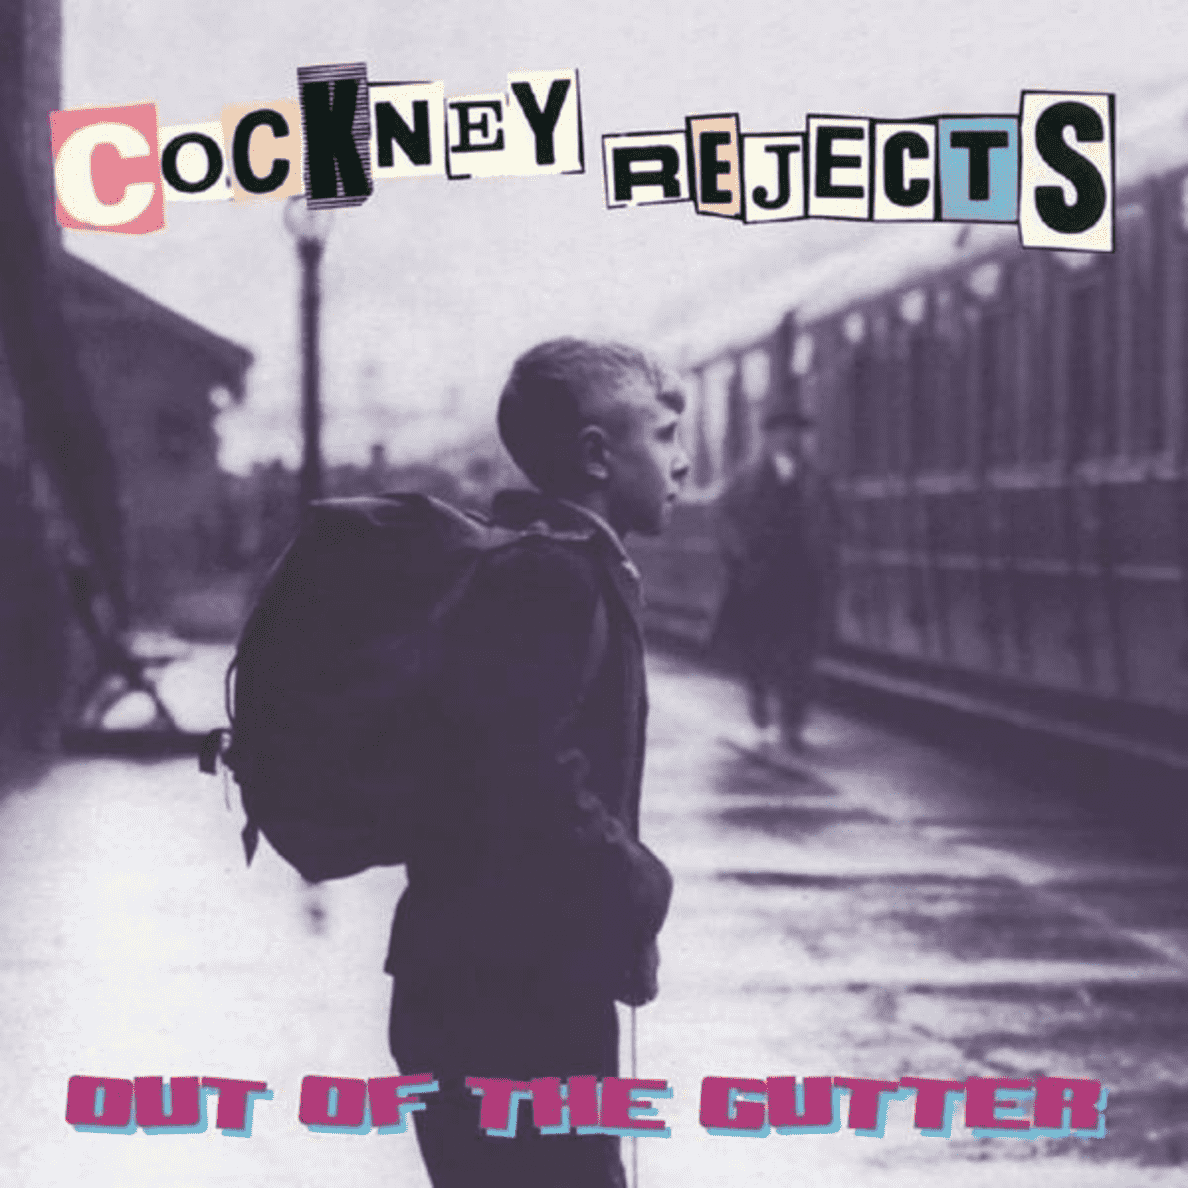 Out Of The Gutter Cockney Rejects auf Vinyl